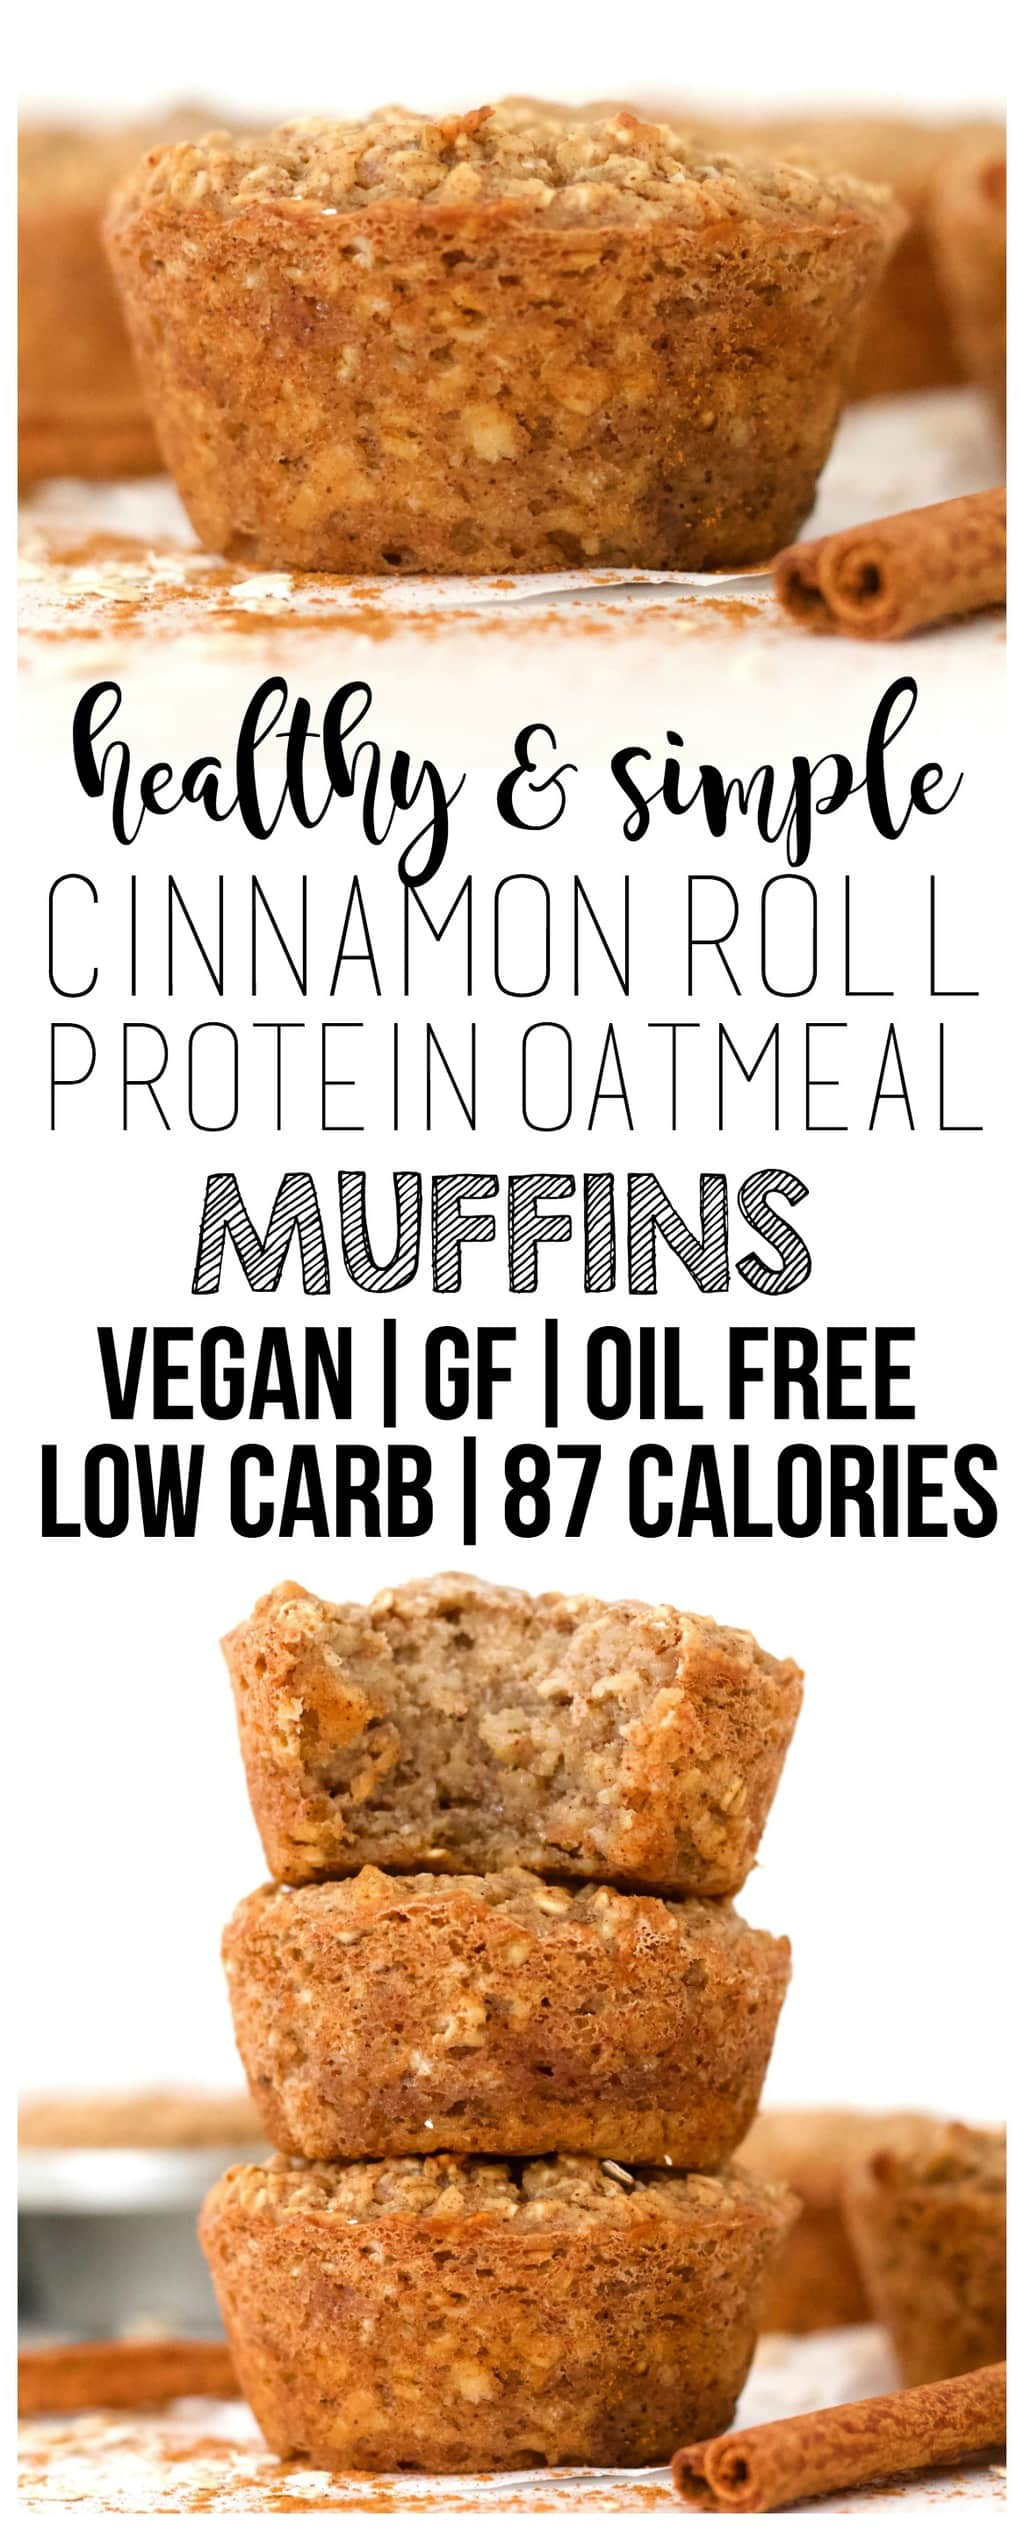 You will LOVE these super healthy & delicious Cinnamon Roll Protein Oatmeal Muffins! They are vegan, gluten-free, dairy-free, sugar-free, oil-free, low-carb, and low-calorie - only 87 calories each! Made with tofu for a powerful protein boost - the perfect, filling, vegan breakfast.